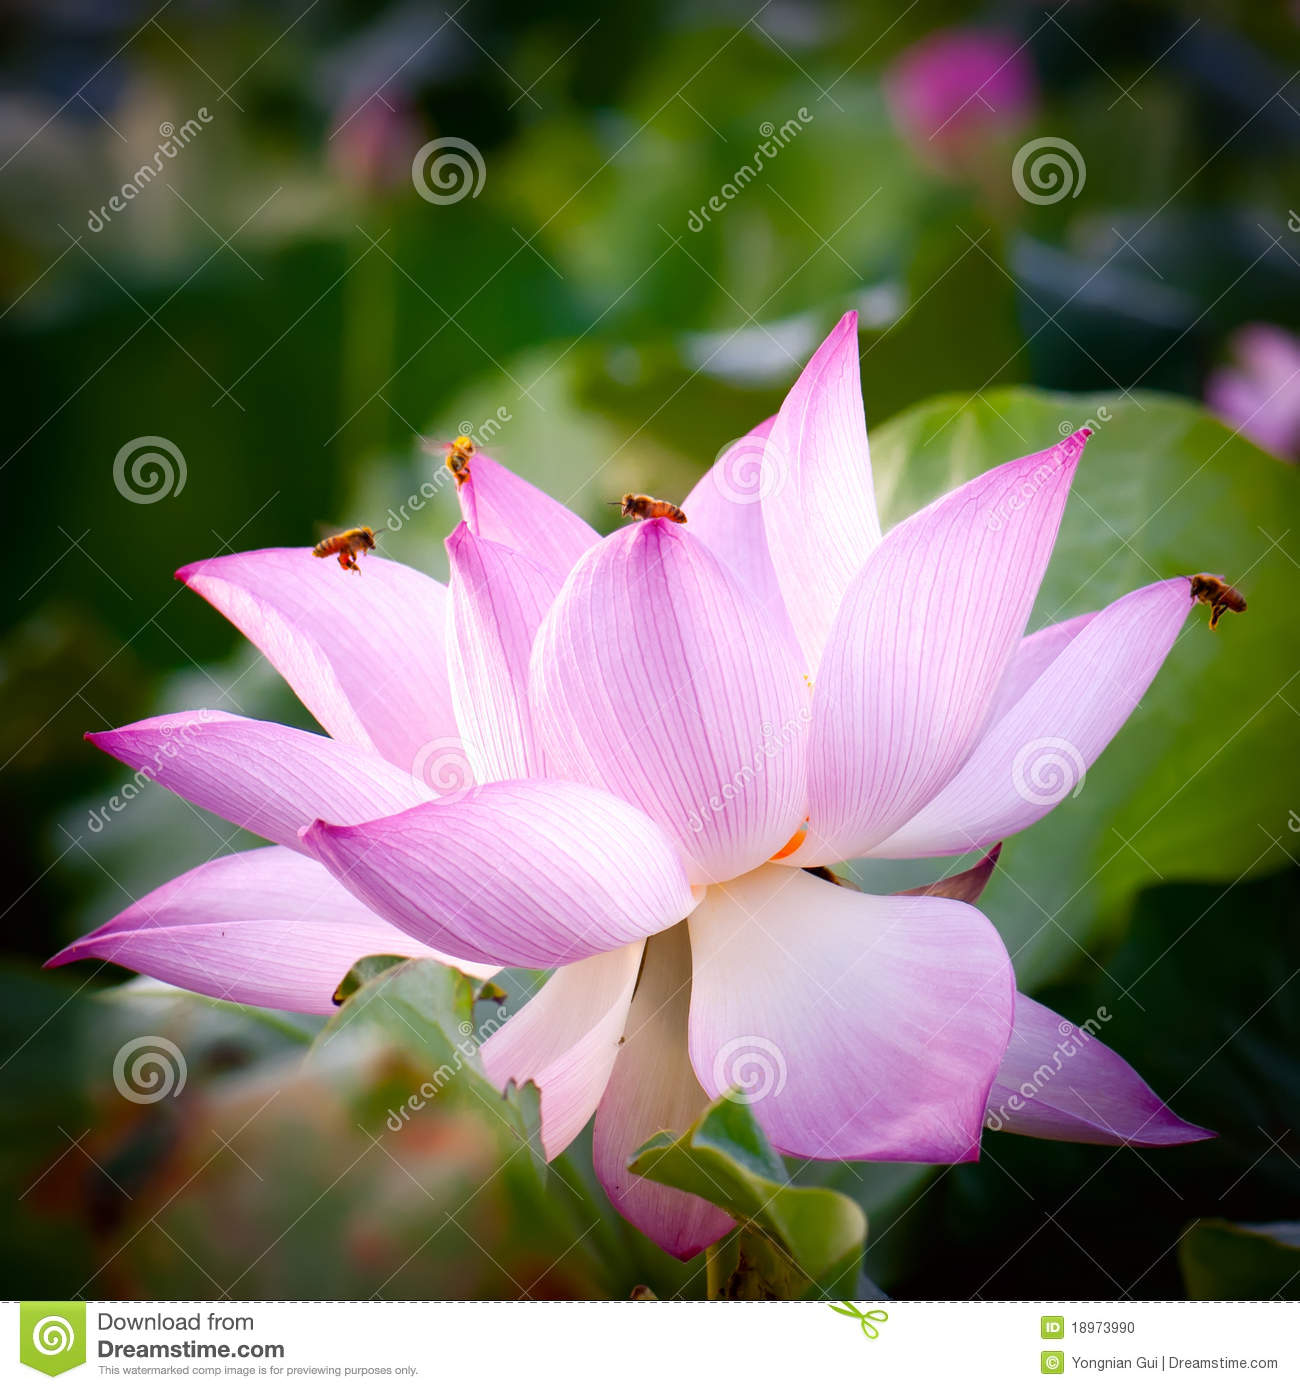 lotus flowerhindu lotus stock photo  image, Beautiful flower